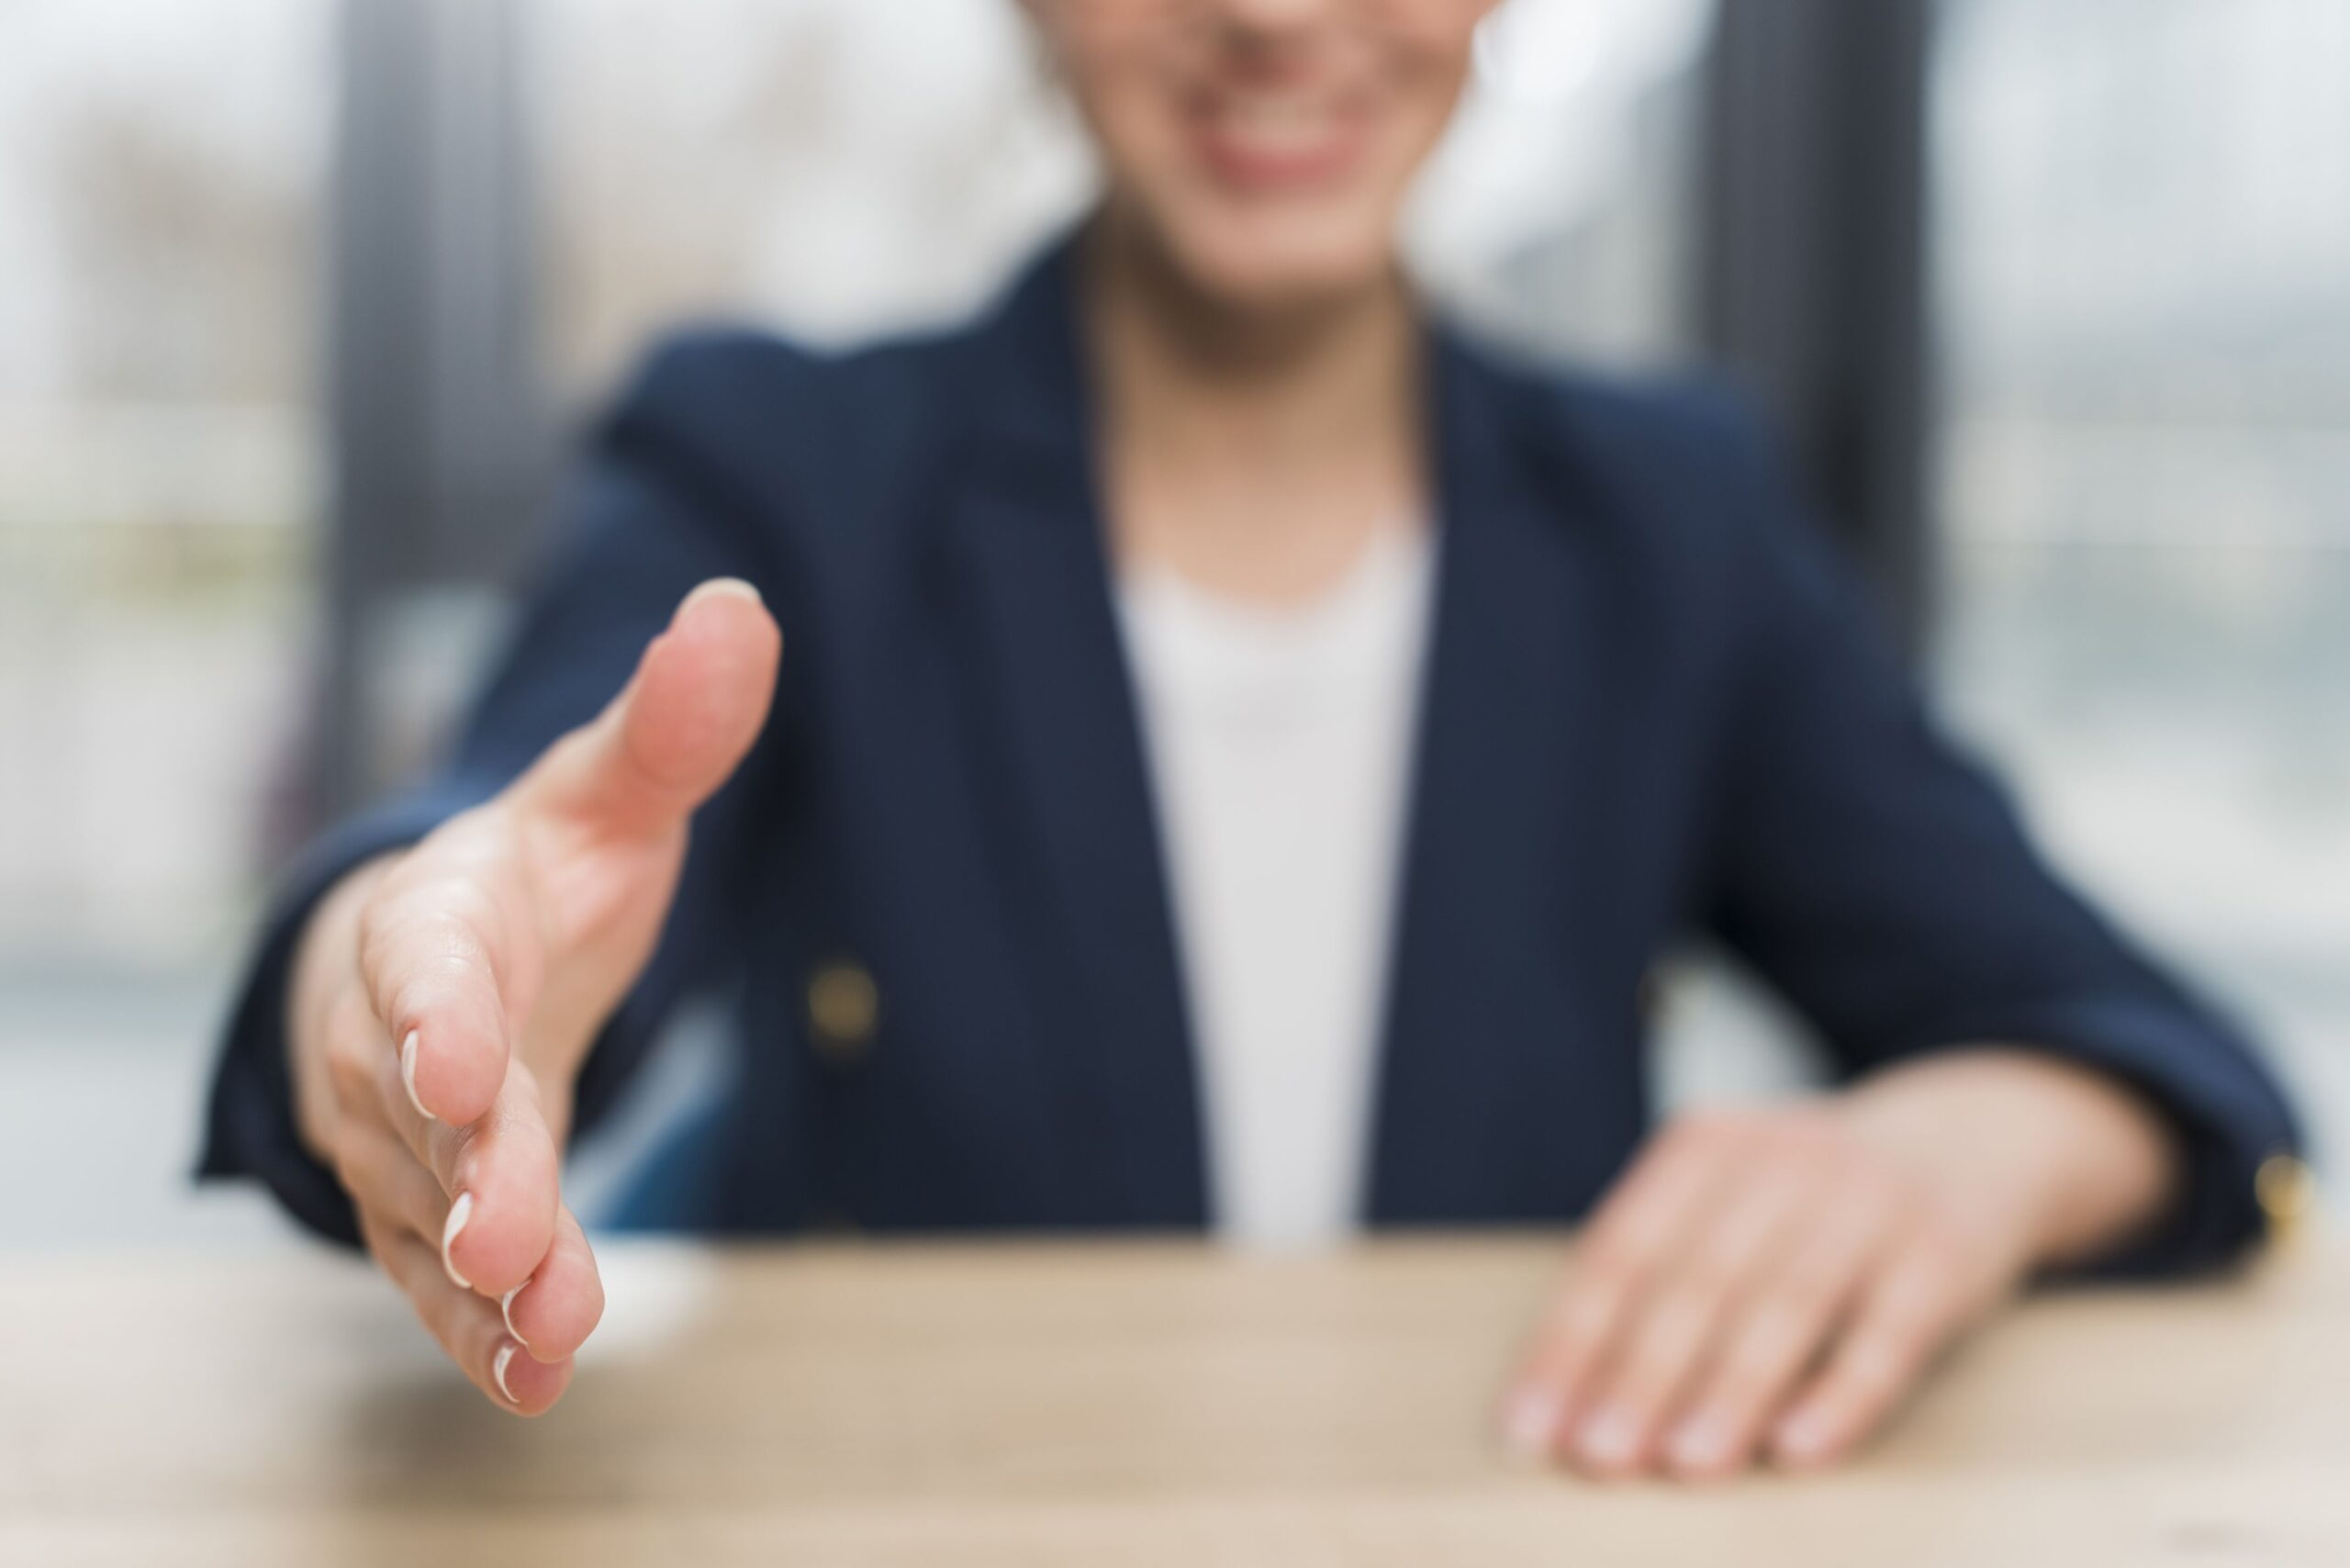 front view defocused woman offering hand shake after being hired scaled